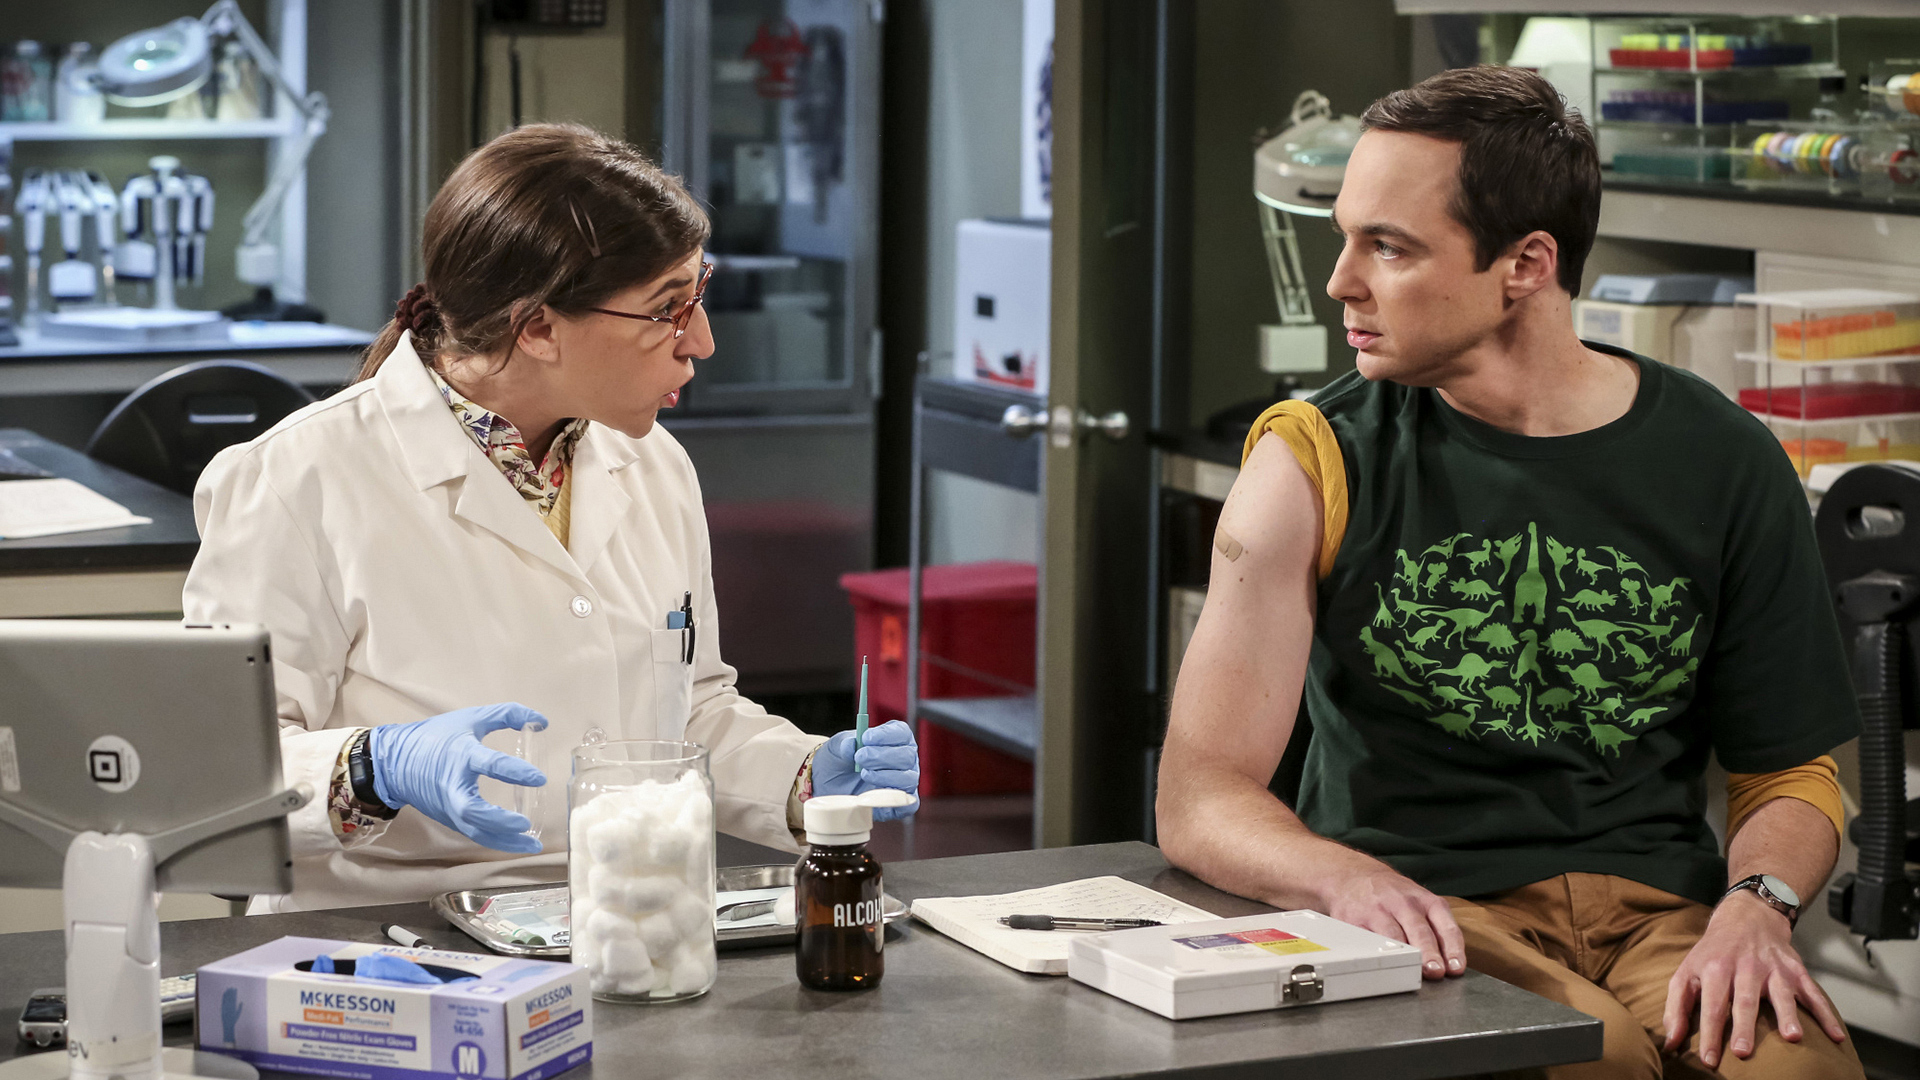 Sheldon hates needles, which comes as no surprise.